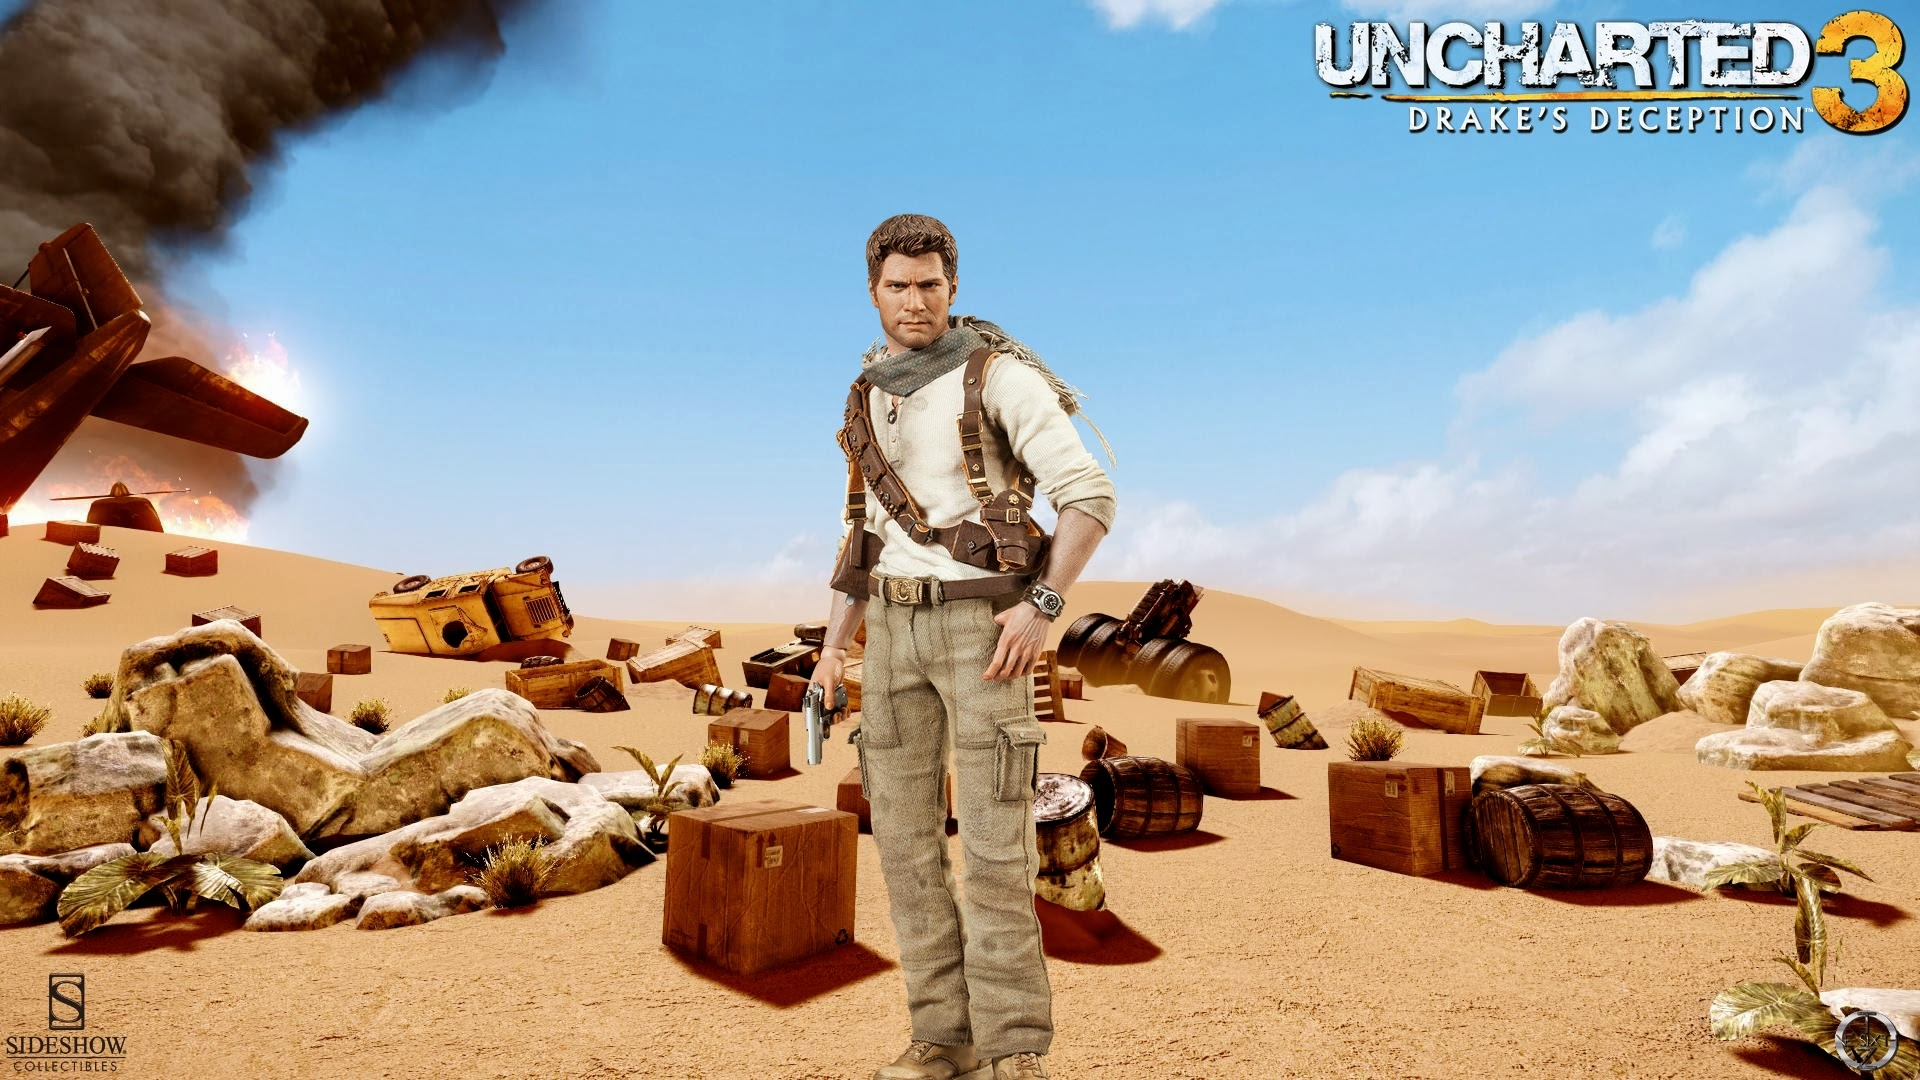 Free Download Nathan Drake Uncharted 3 Sideshow Collectibles Full